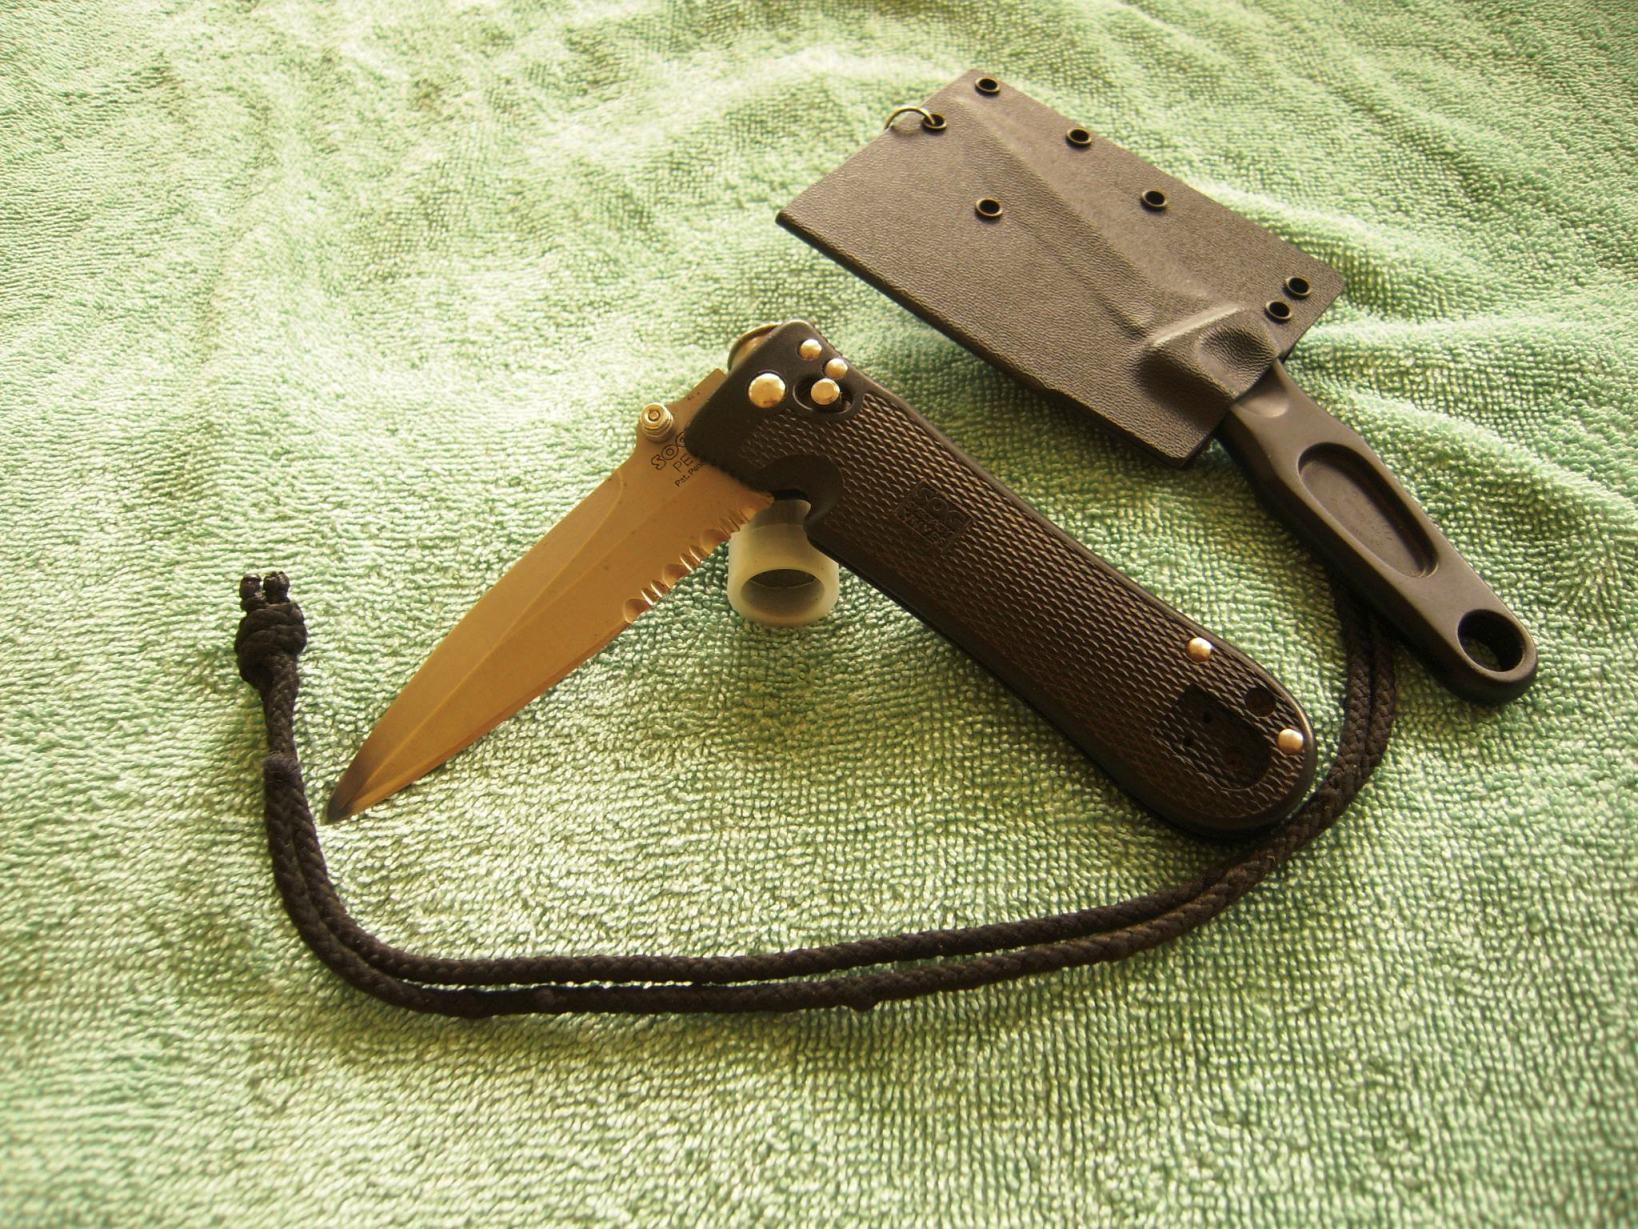 Your EDC Knife-ew.jpg